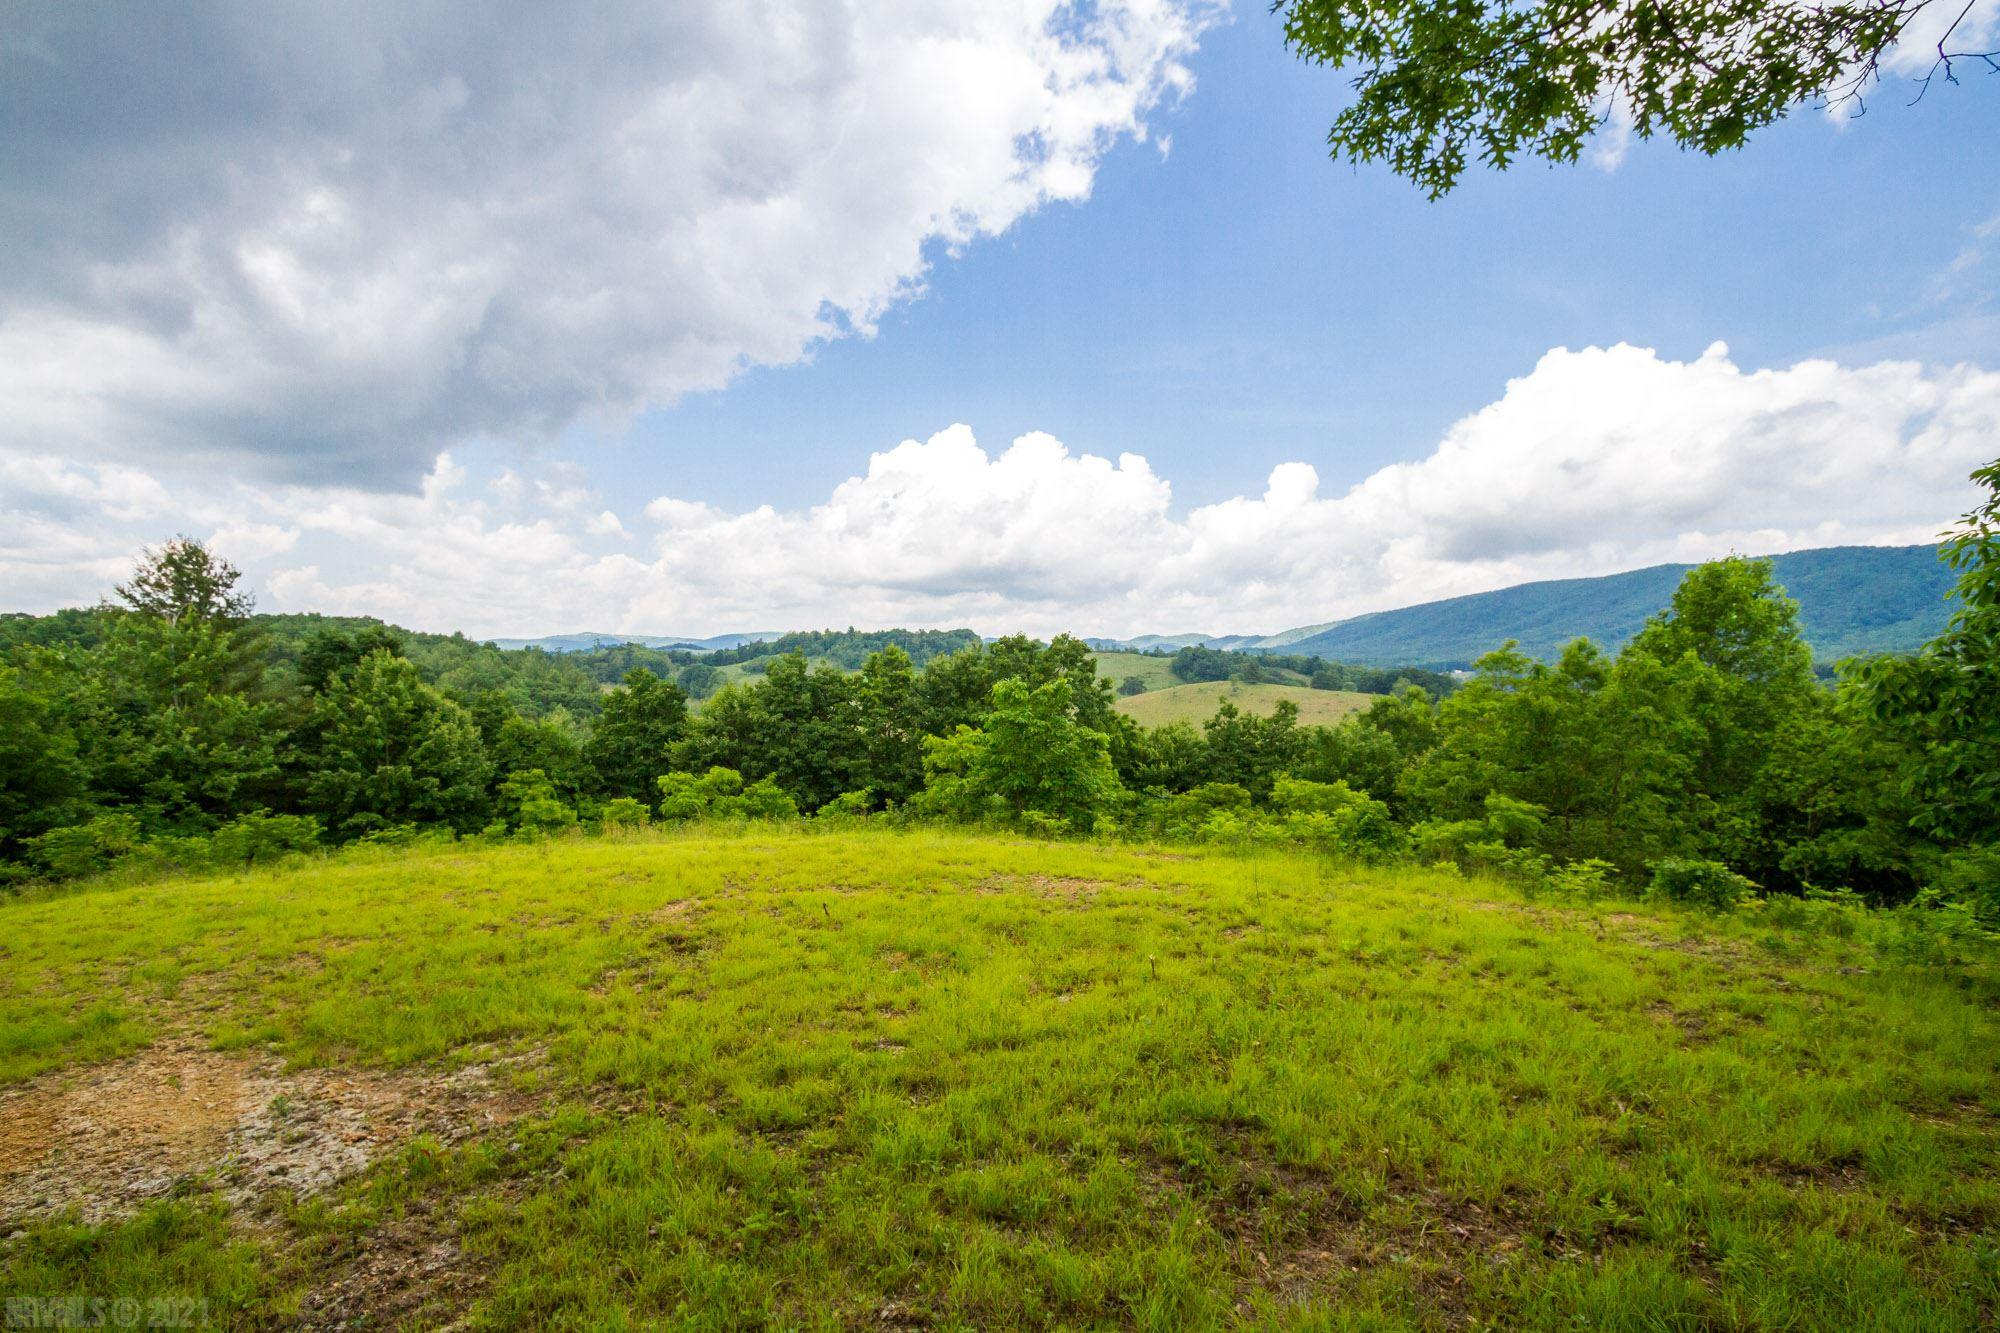 Remarkable mountain views of the beautiful Elk Creek Valley located in Grayson County. This property is two adjoining tracts. Each with their own entrances and roads leading up to buildable home sites. This property offers plenty of seclusion and acreage, even adjoining Jefferson National Forest. Very close to hiking trails and horse camps. Lot 5 has been perked for a 3 bedroom septic system. Lot 4 & 5 can be sold individually. Call for an appointment today!